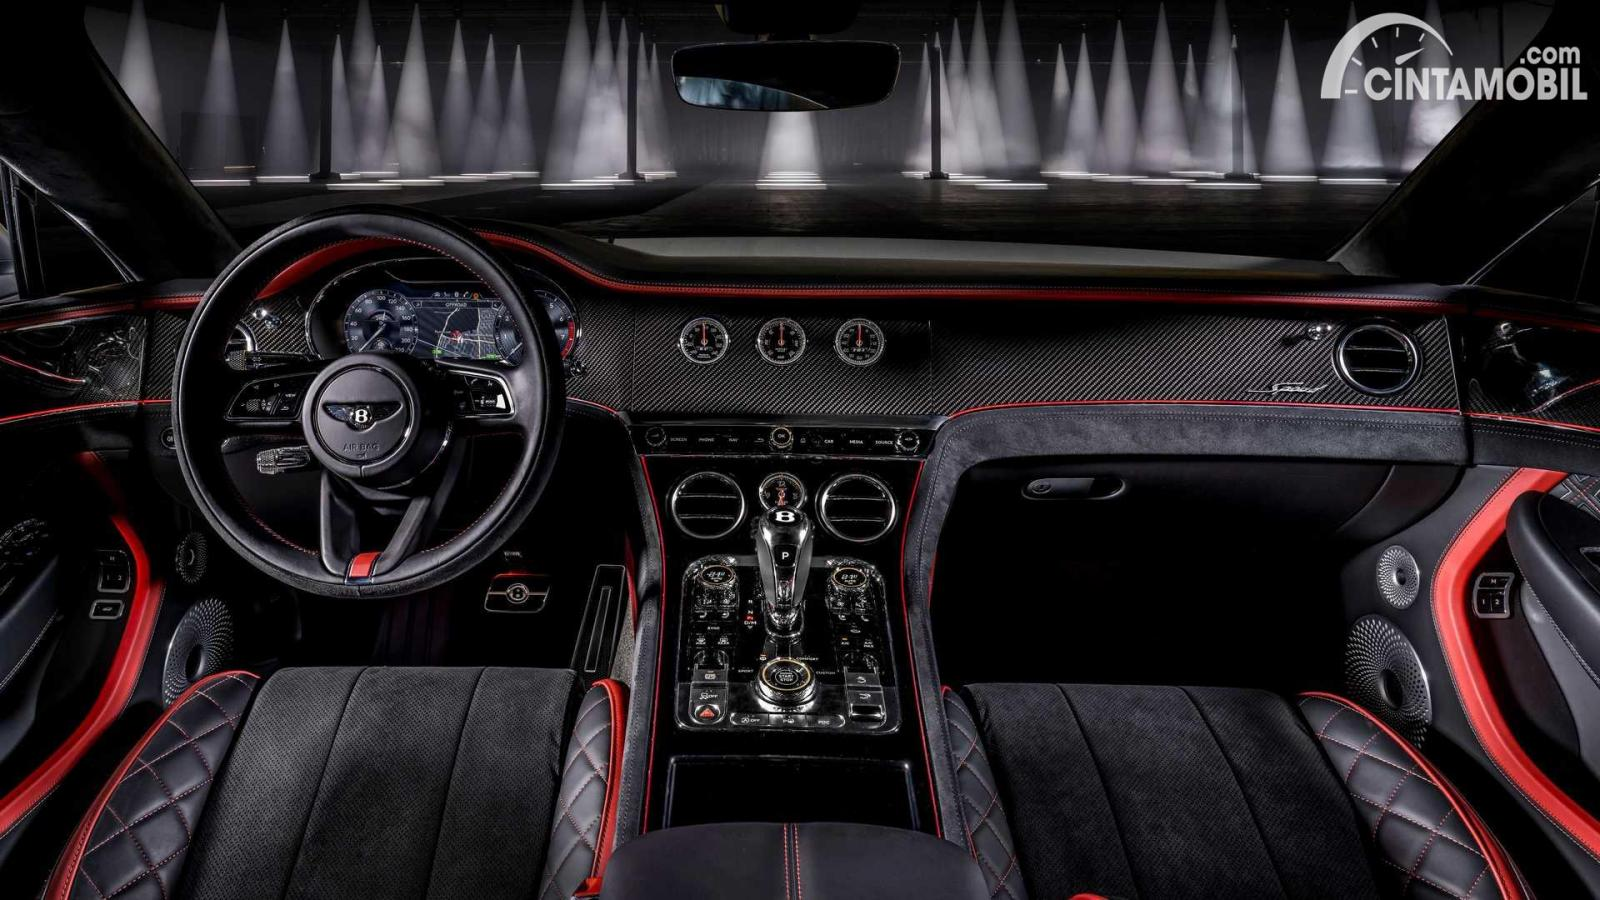 tampilan terbaru dari dashboard Bentley Continental GT Speed